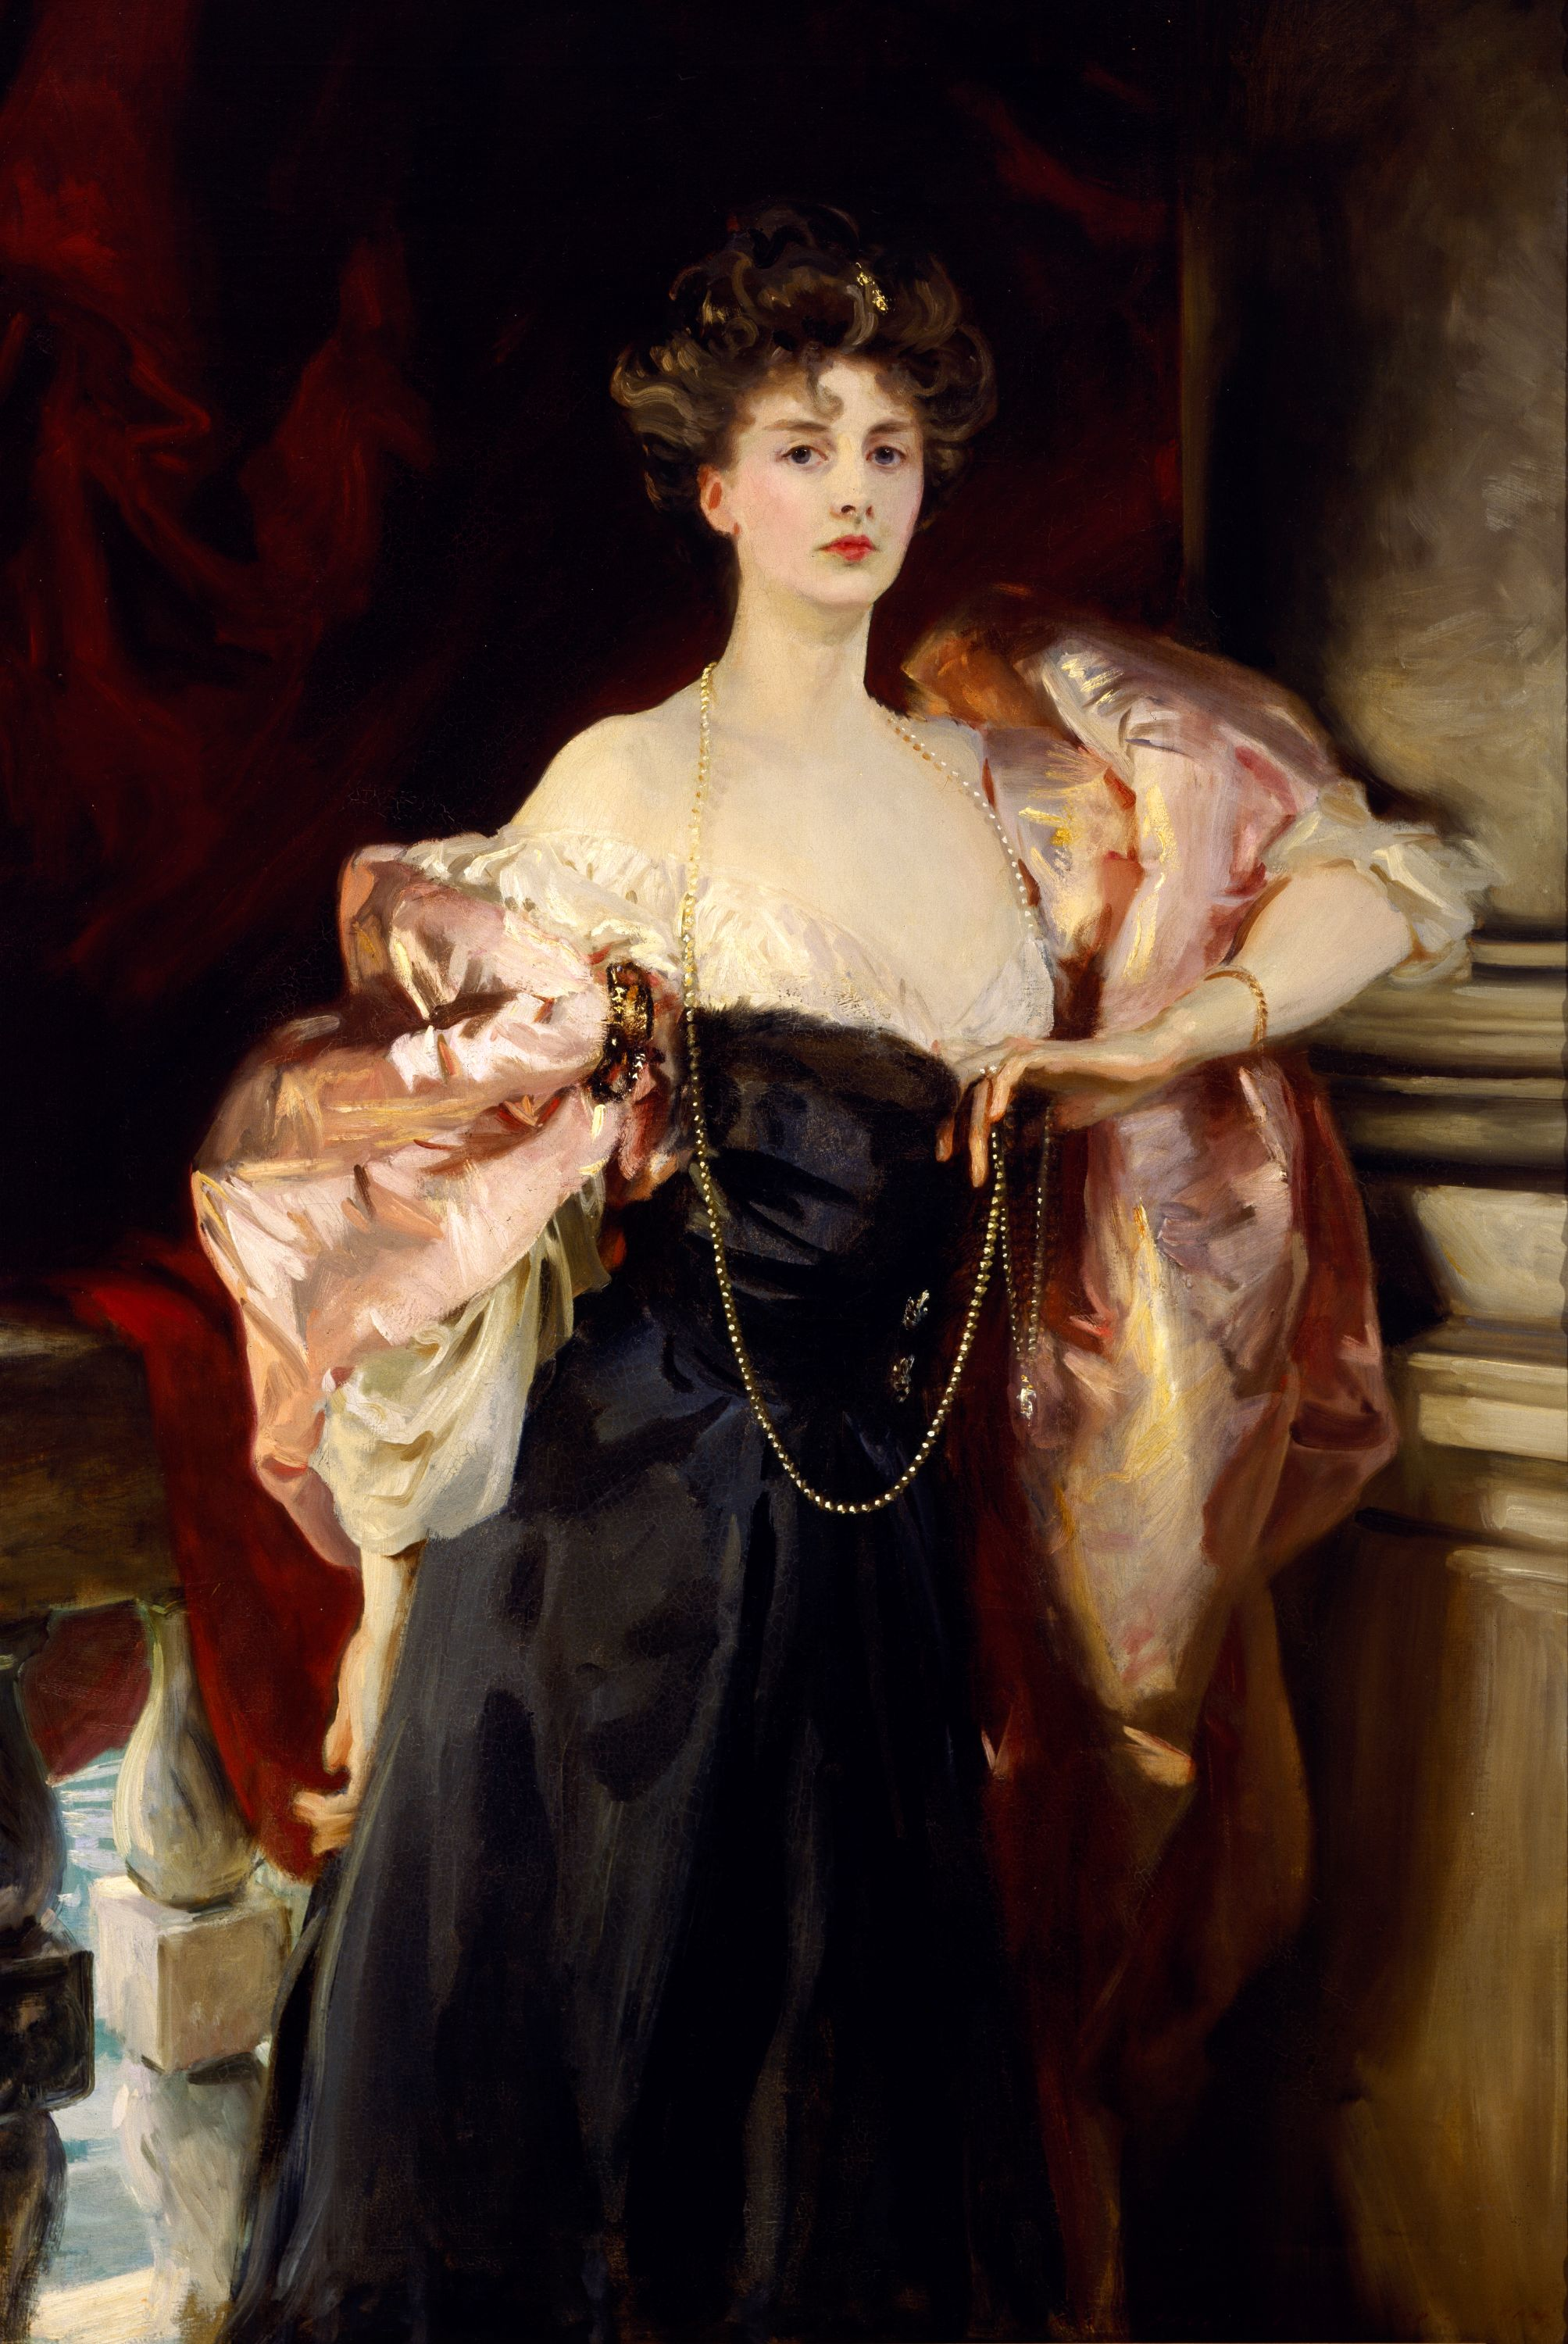 https://i1.wp.com/upload.wikimedia.org/wikipedia/commons/a/a4/Sargent_Portrait_of_Lady_Helen_Vincent_1904.jpg